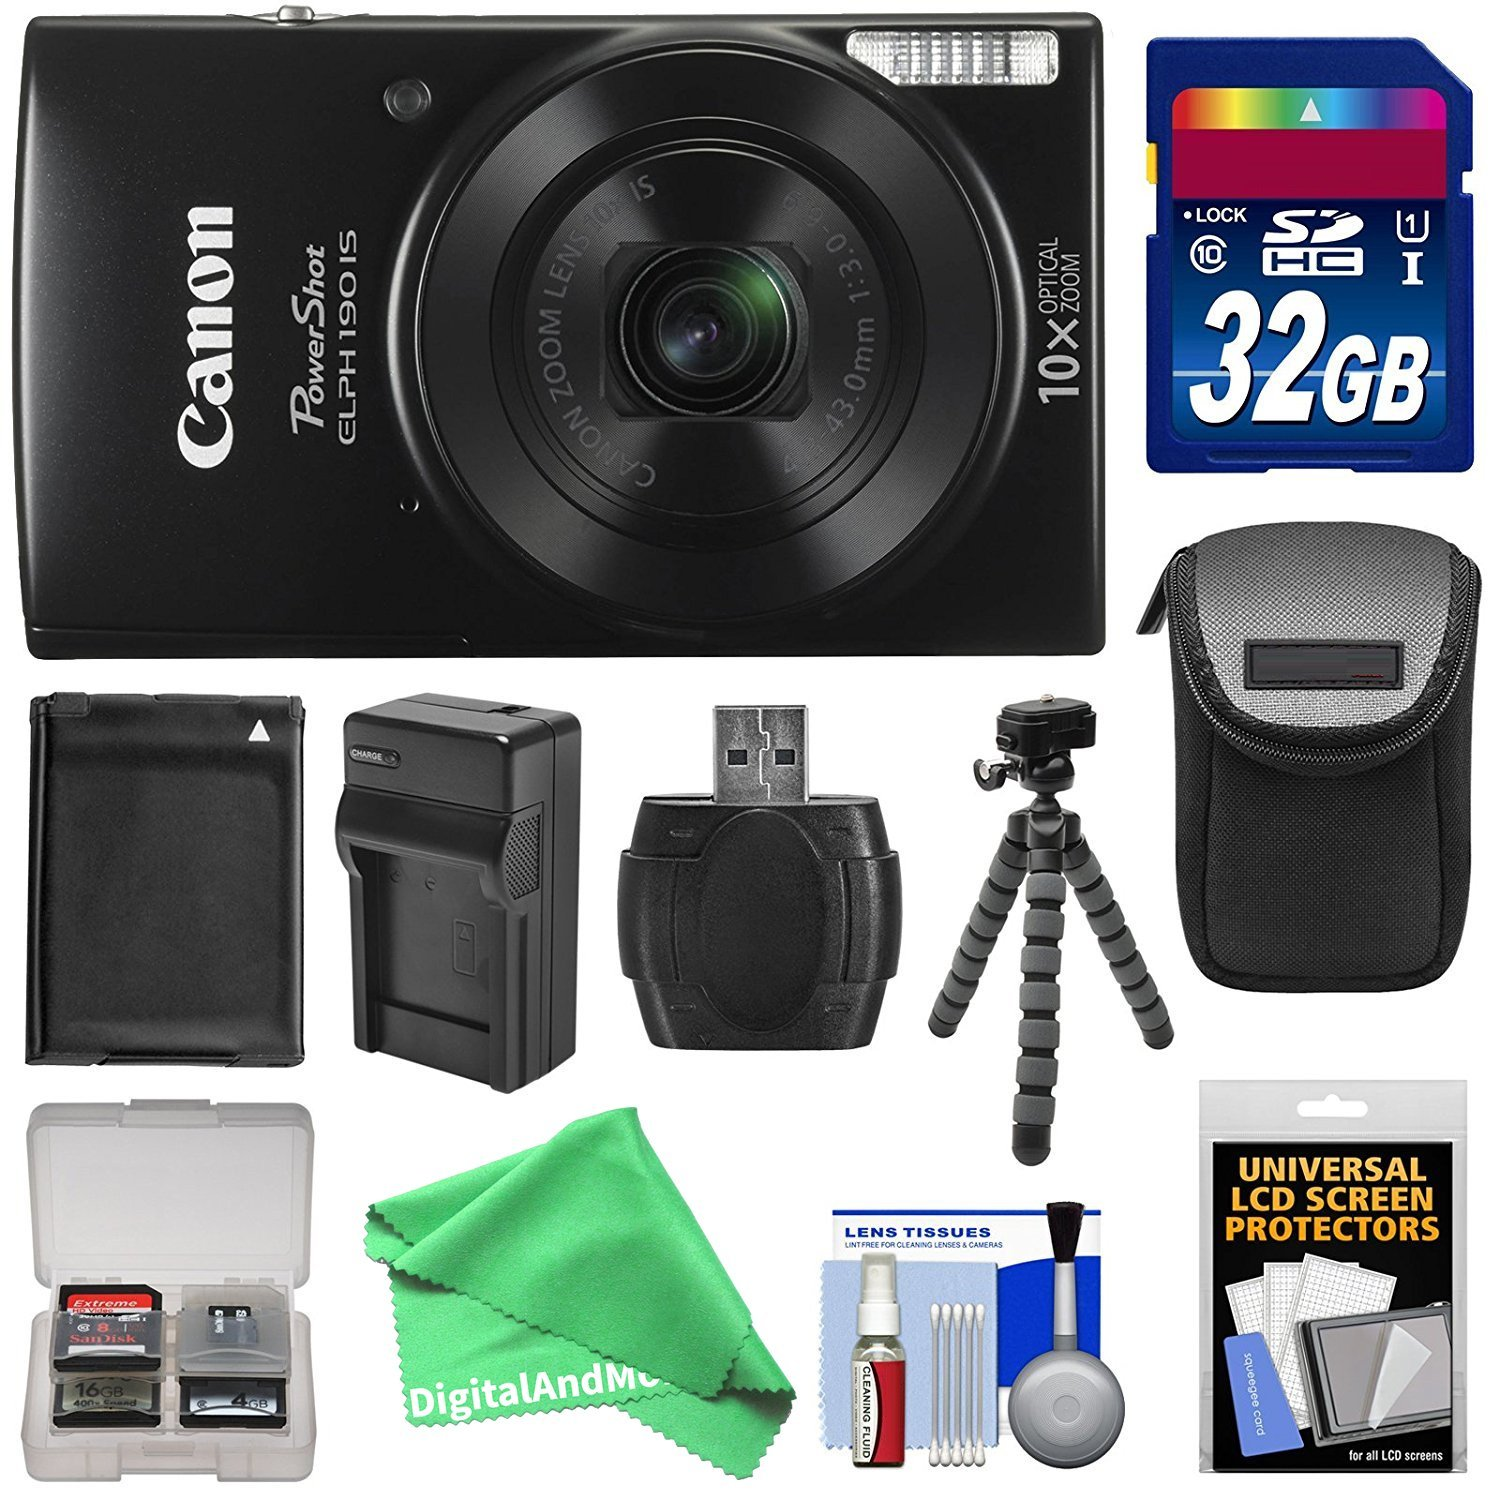 Canon PowerShot Elph 190 IS Wi-Fi Digital Camera (Black) with 32GB Card + Case + Battery & Charger + Flex Tripod + ULTIMATE DigitalAndMore Kit for ELPH 190